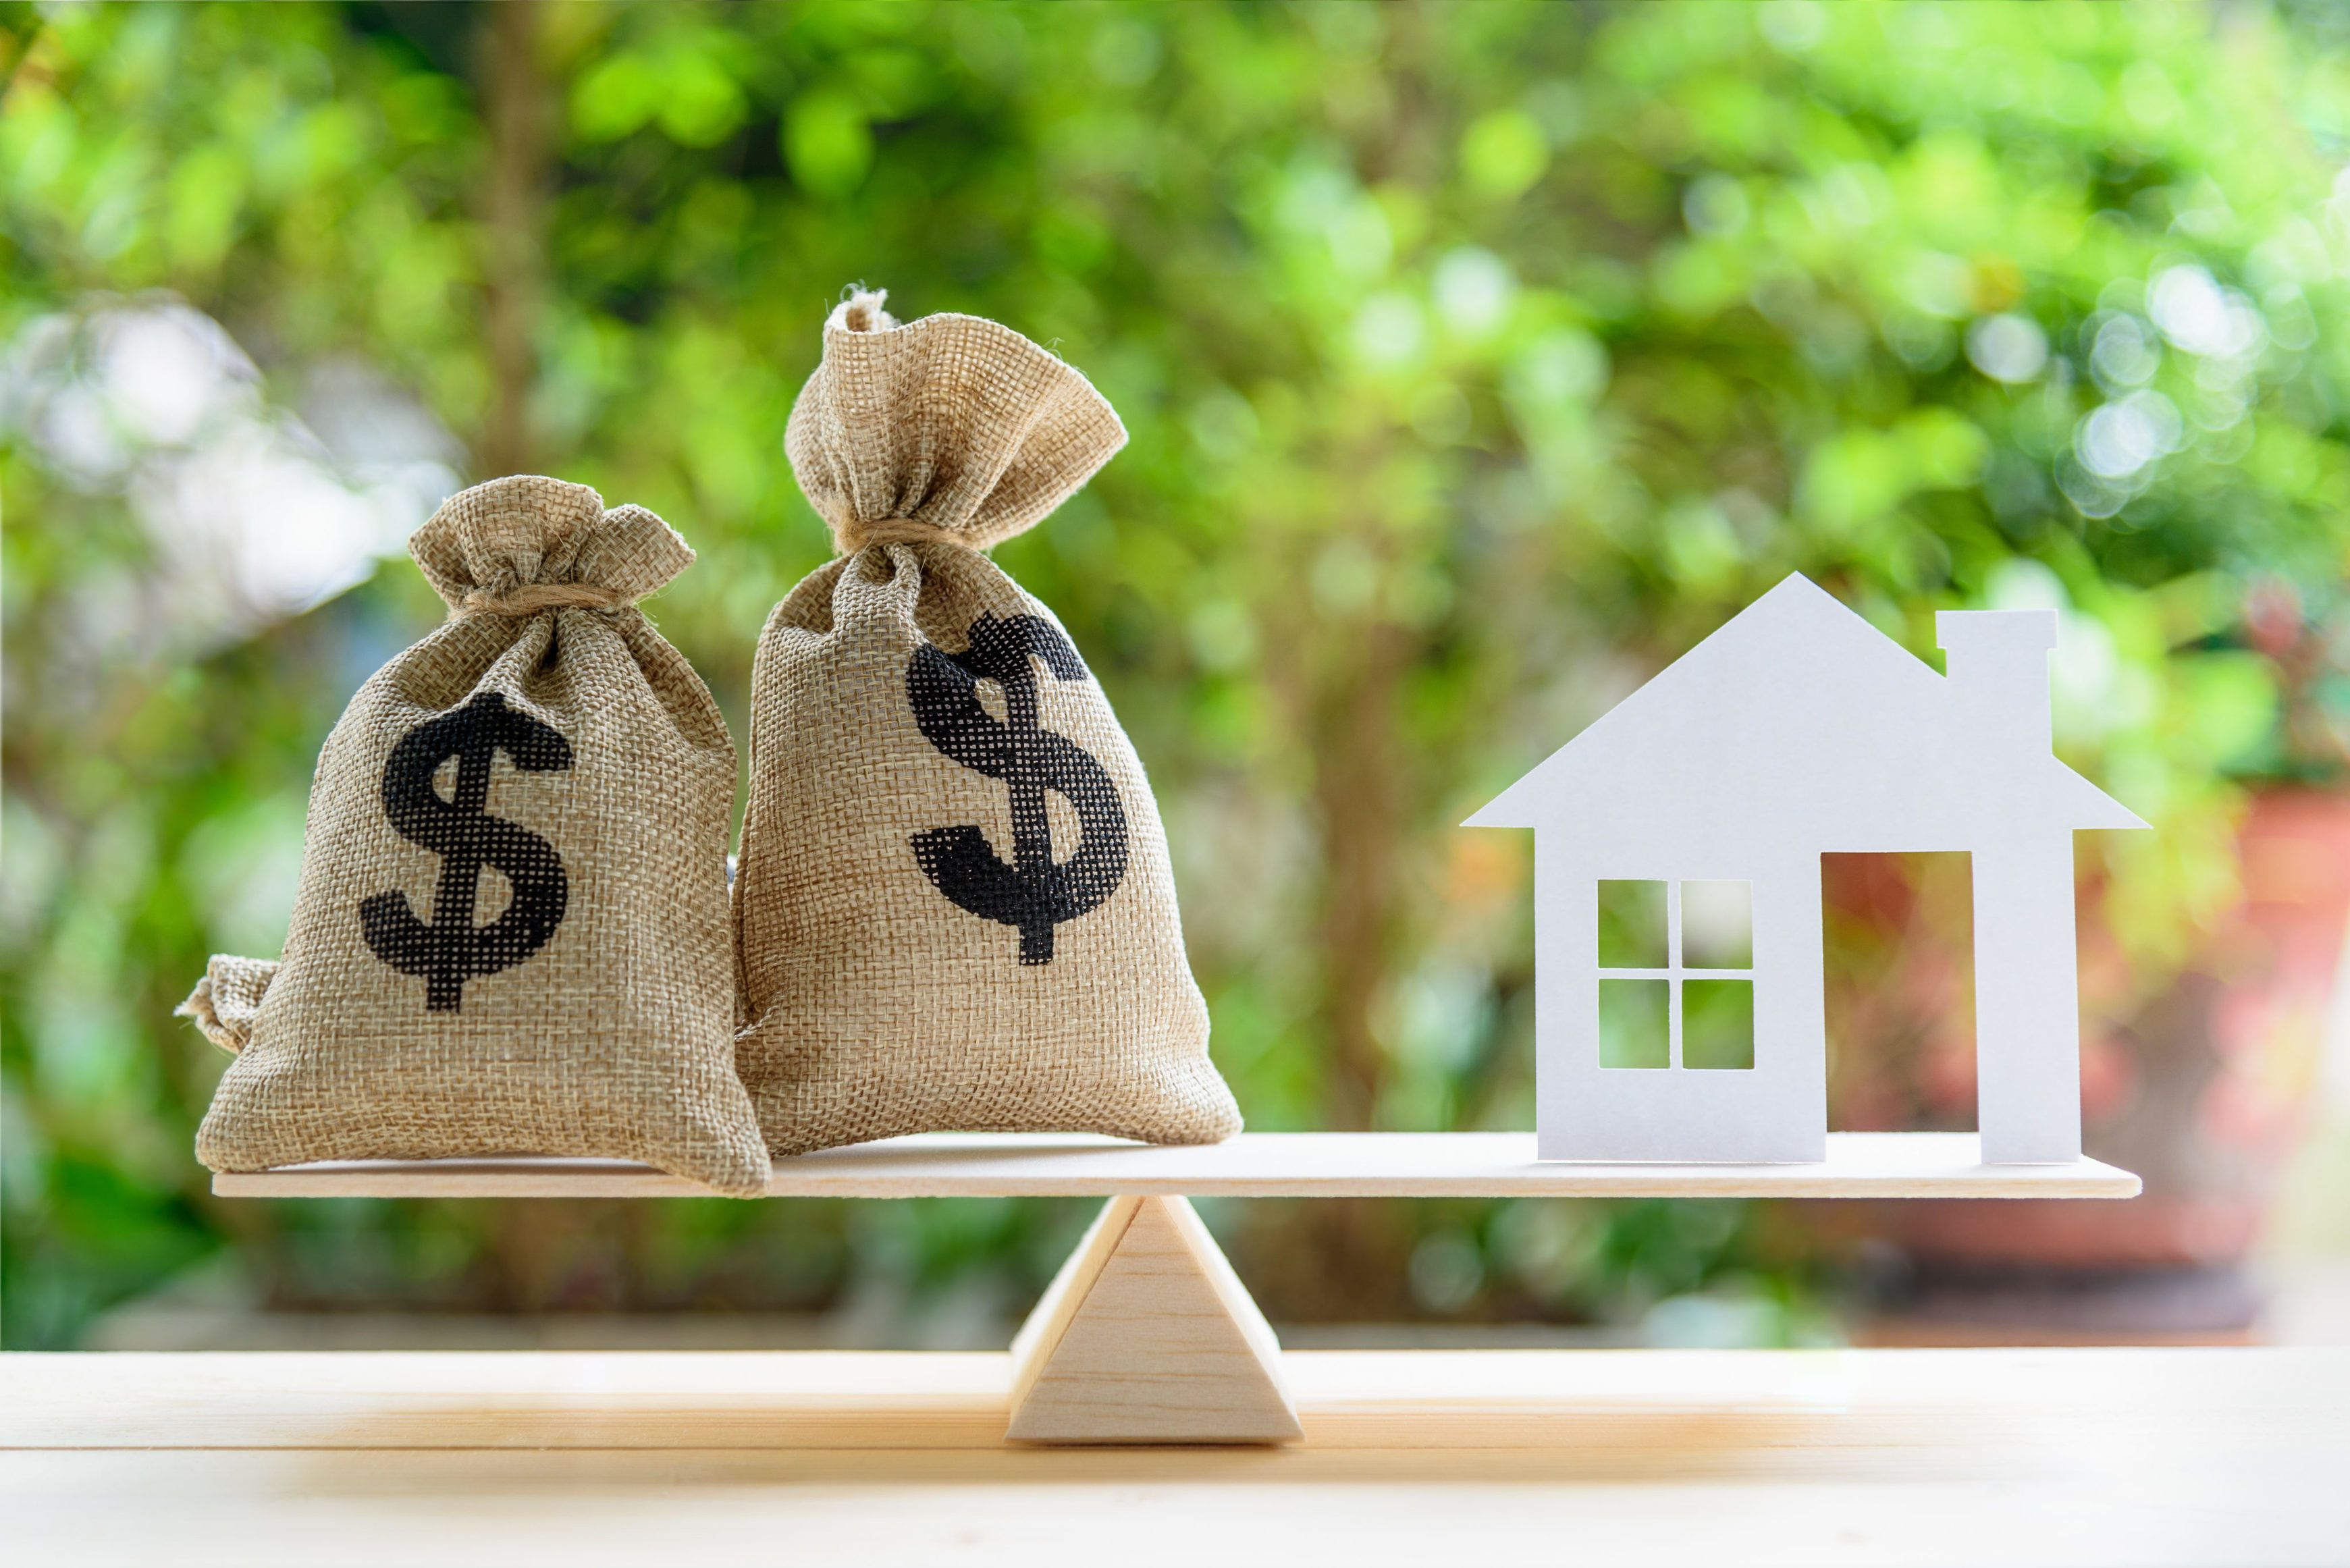 What Determines the Value of Your House?